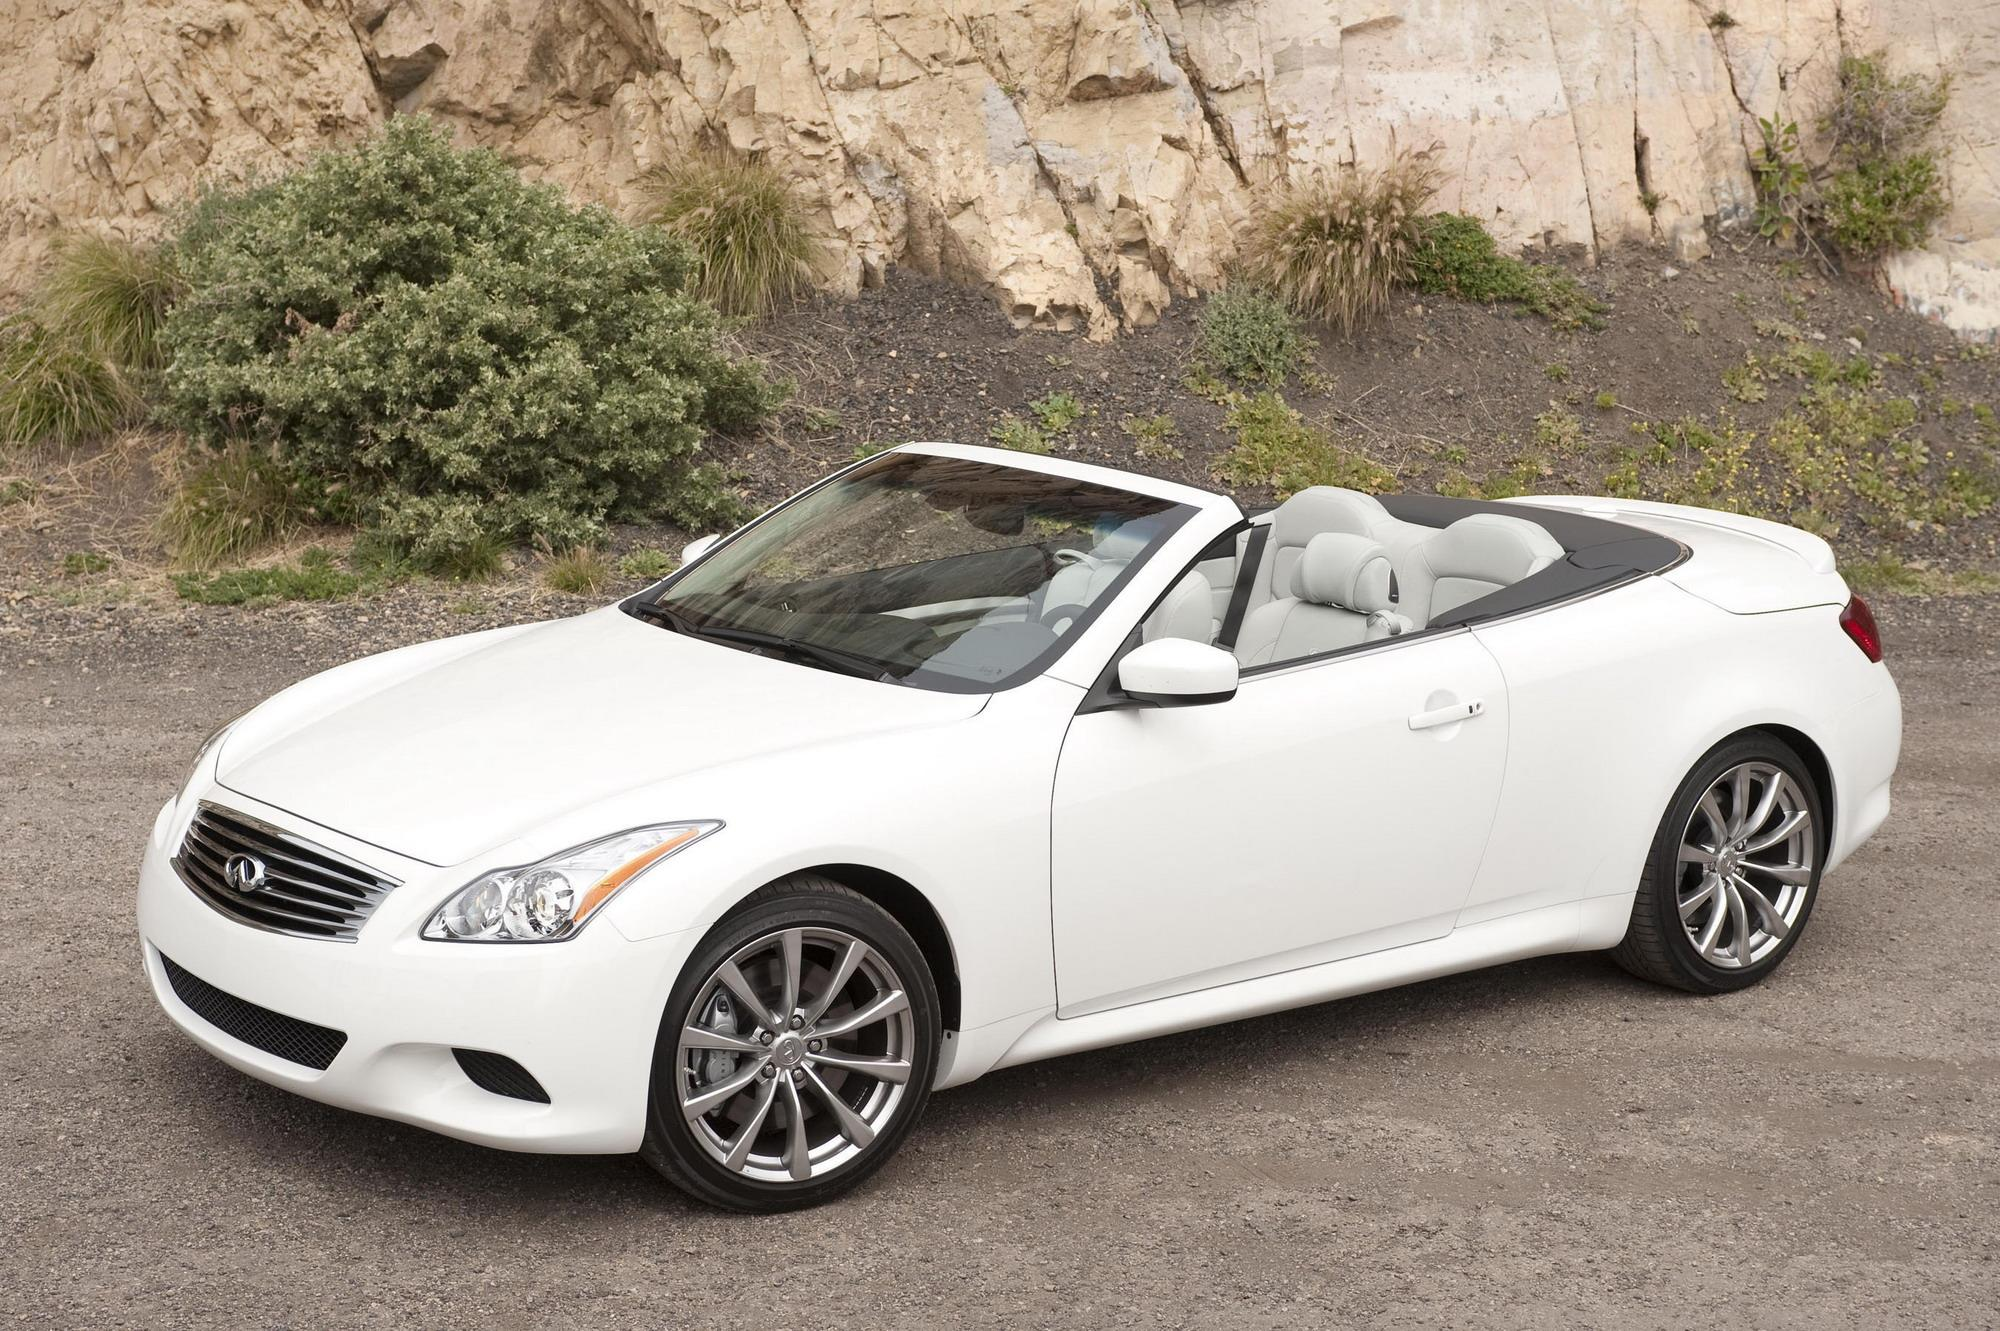 2009 infiniti g37 convertible us prices announced news. Black Bedroom Furniture Sets. Home Design Ideas